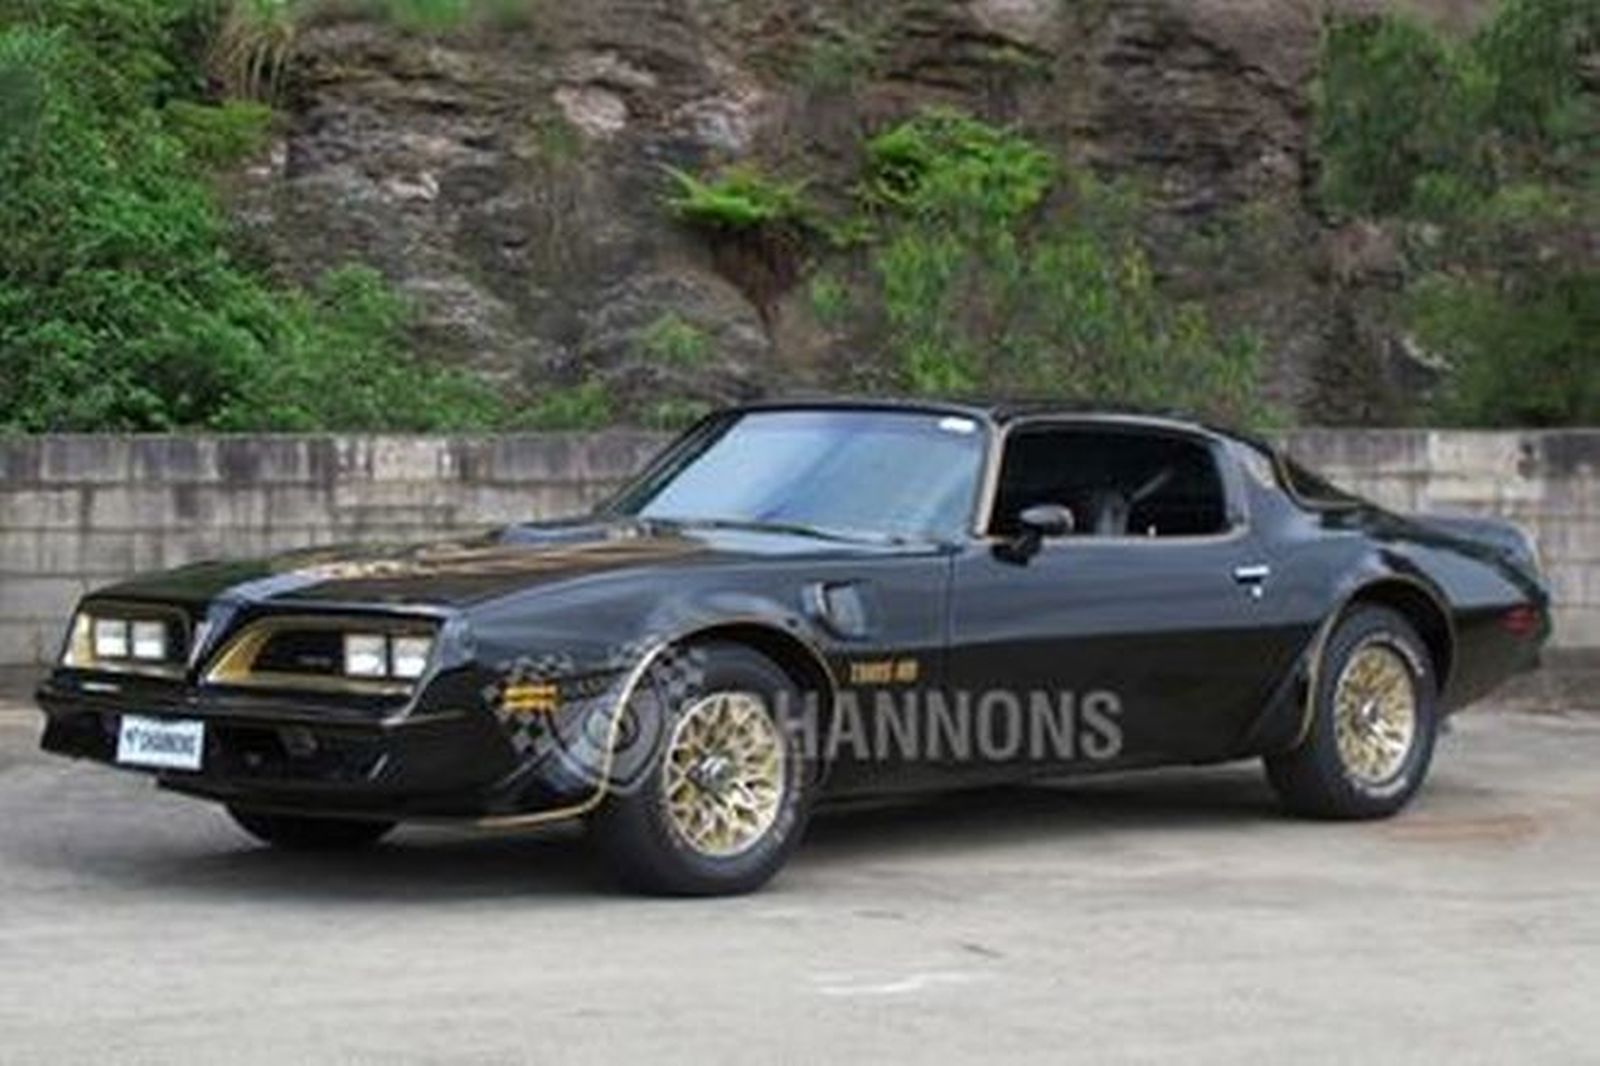 Pontiac Firebird Trans Am Coupe (LHD)